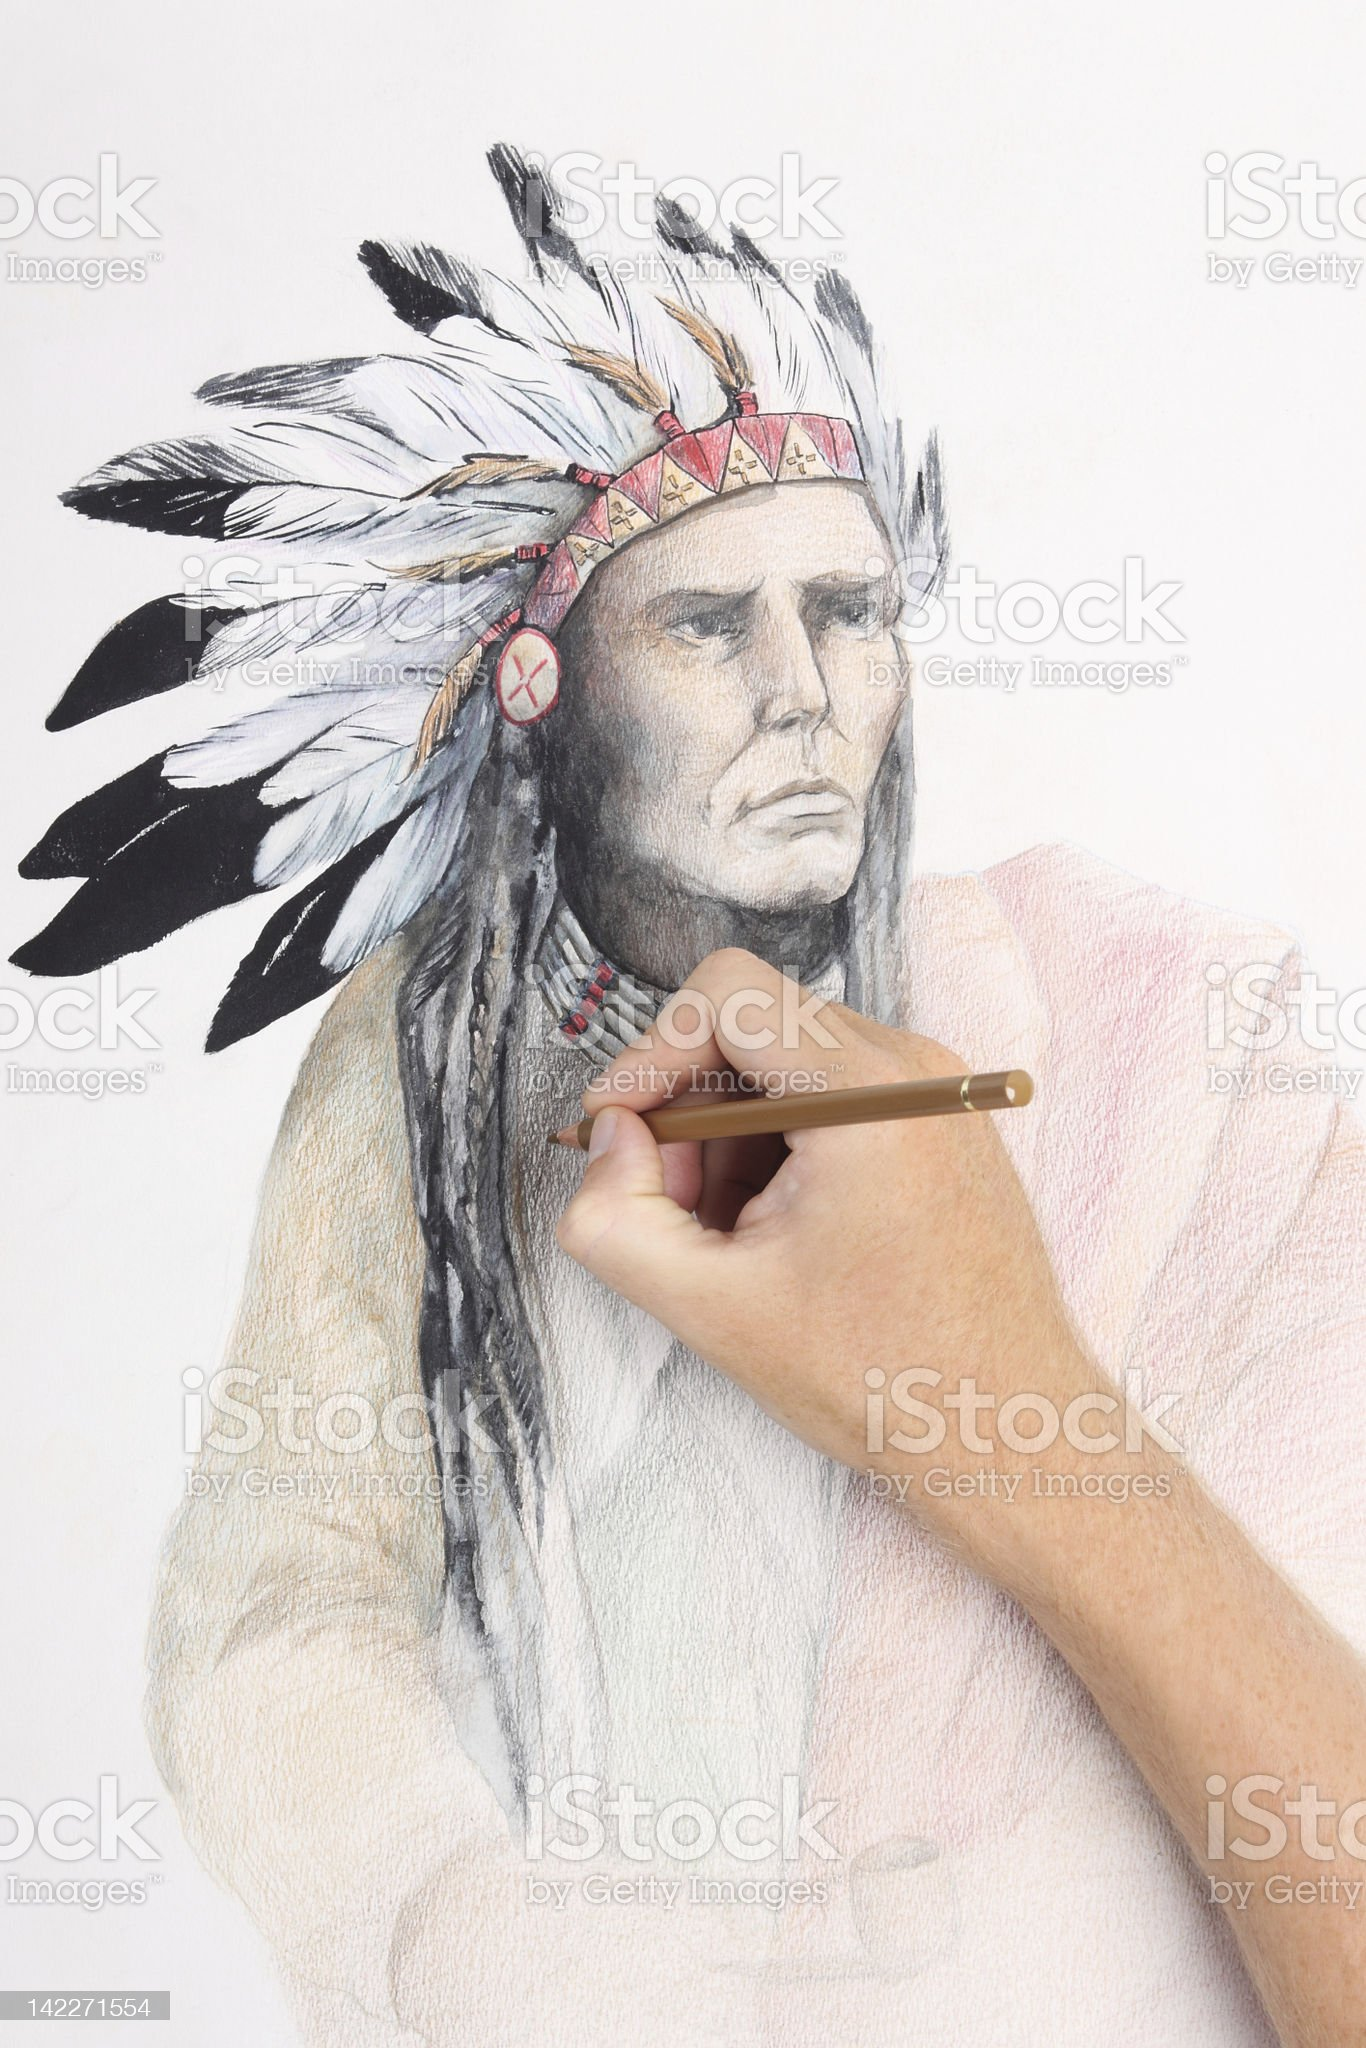 man hand drawing pencil picture with american indian chief royalty-free stock vector art